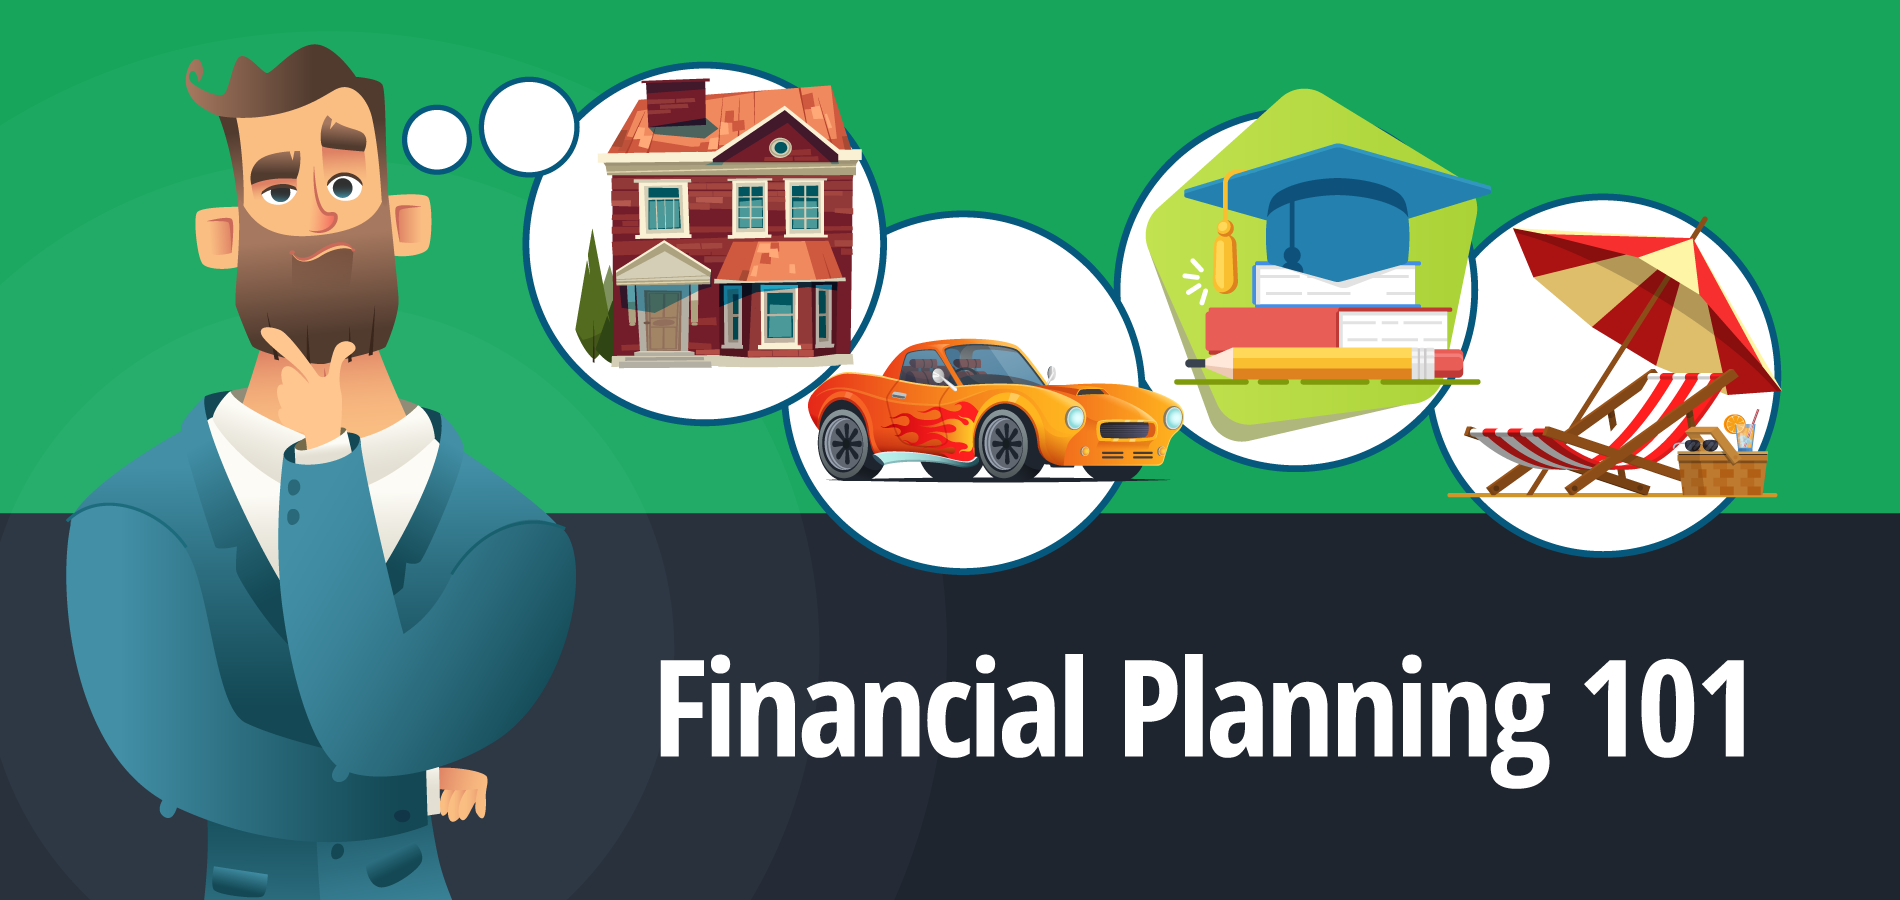 financial planning 101 tips for small business owners